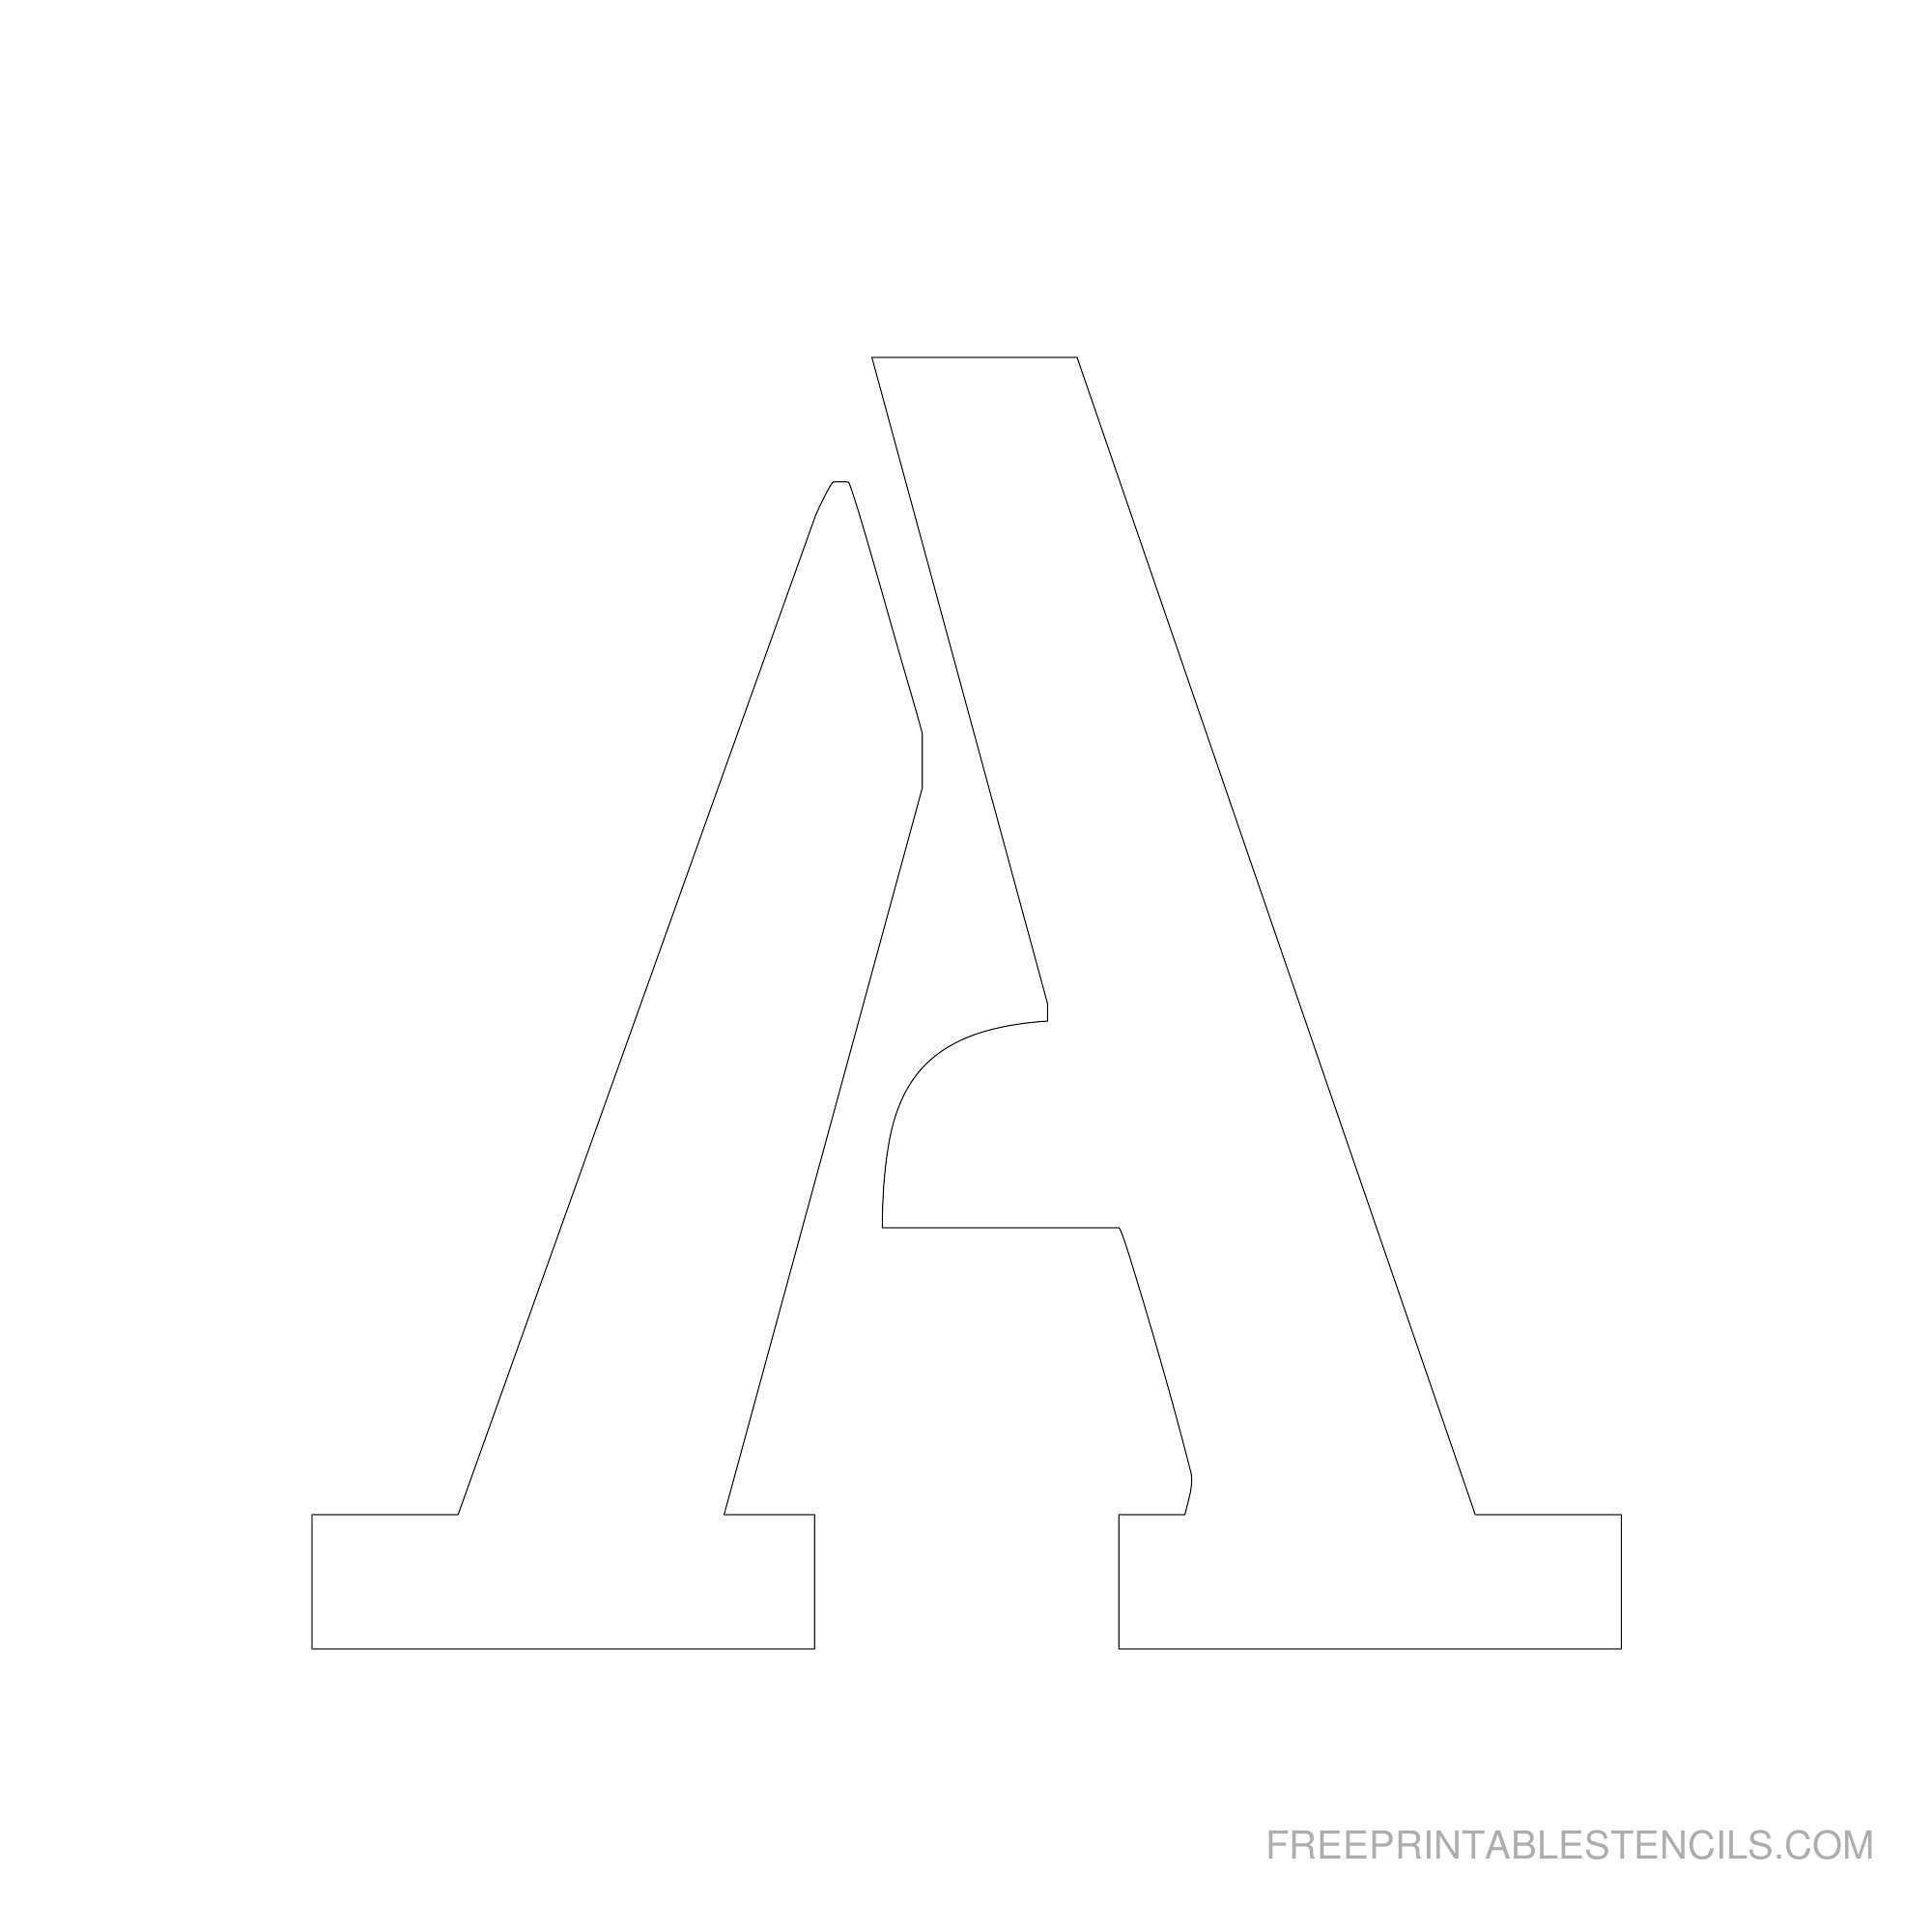 Printable 6 Inch Letter Stencils A-Z   Free Printable Stencils - Free Printable Alphabet Stencils To Cut Out